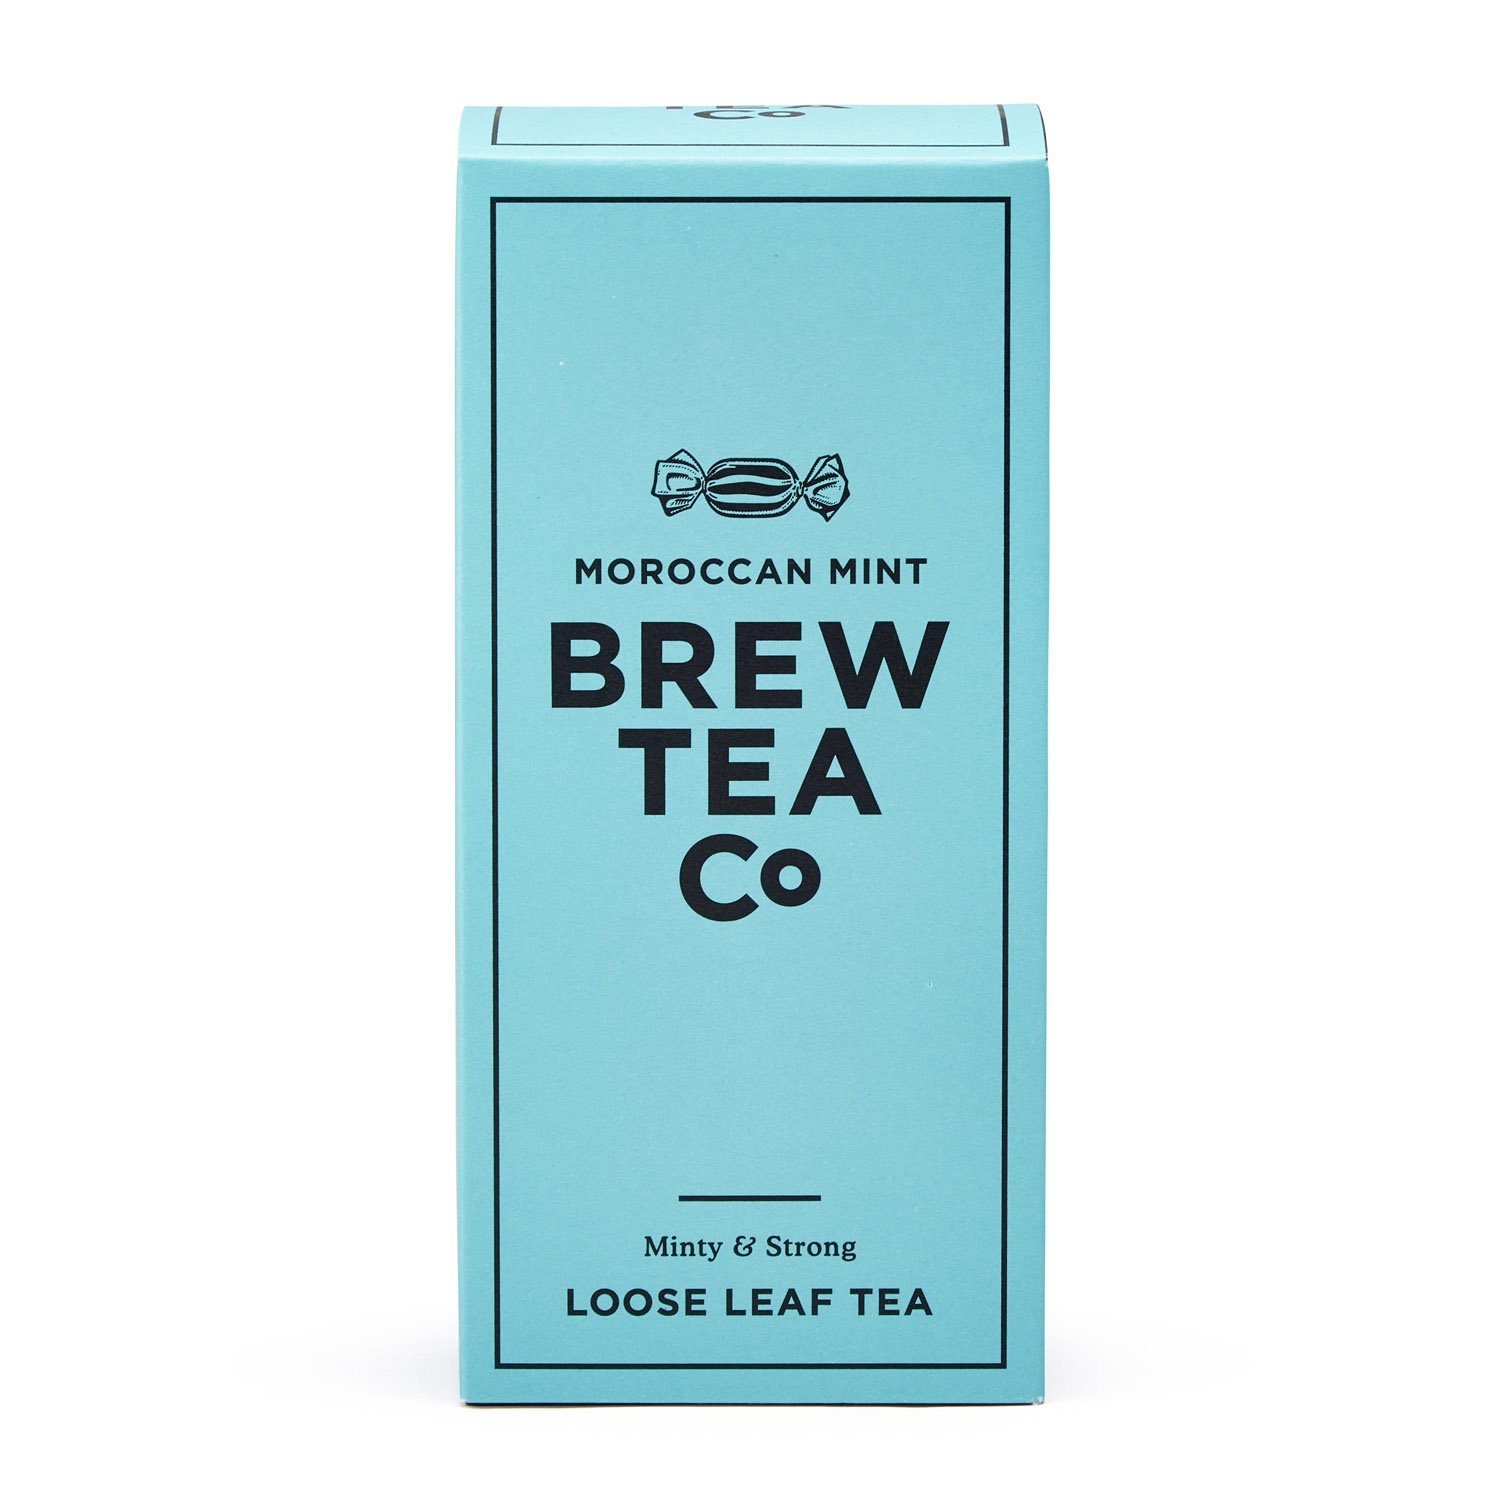 Moroccan Mint Loose Leaf Tea 113g Brew Tea Co